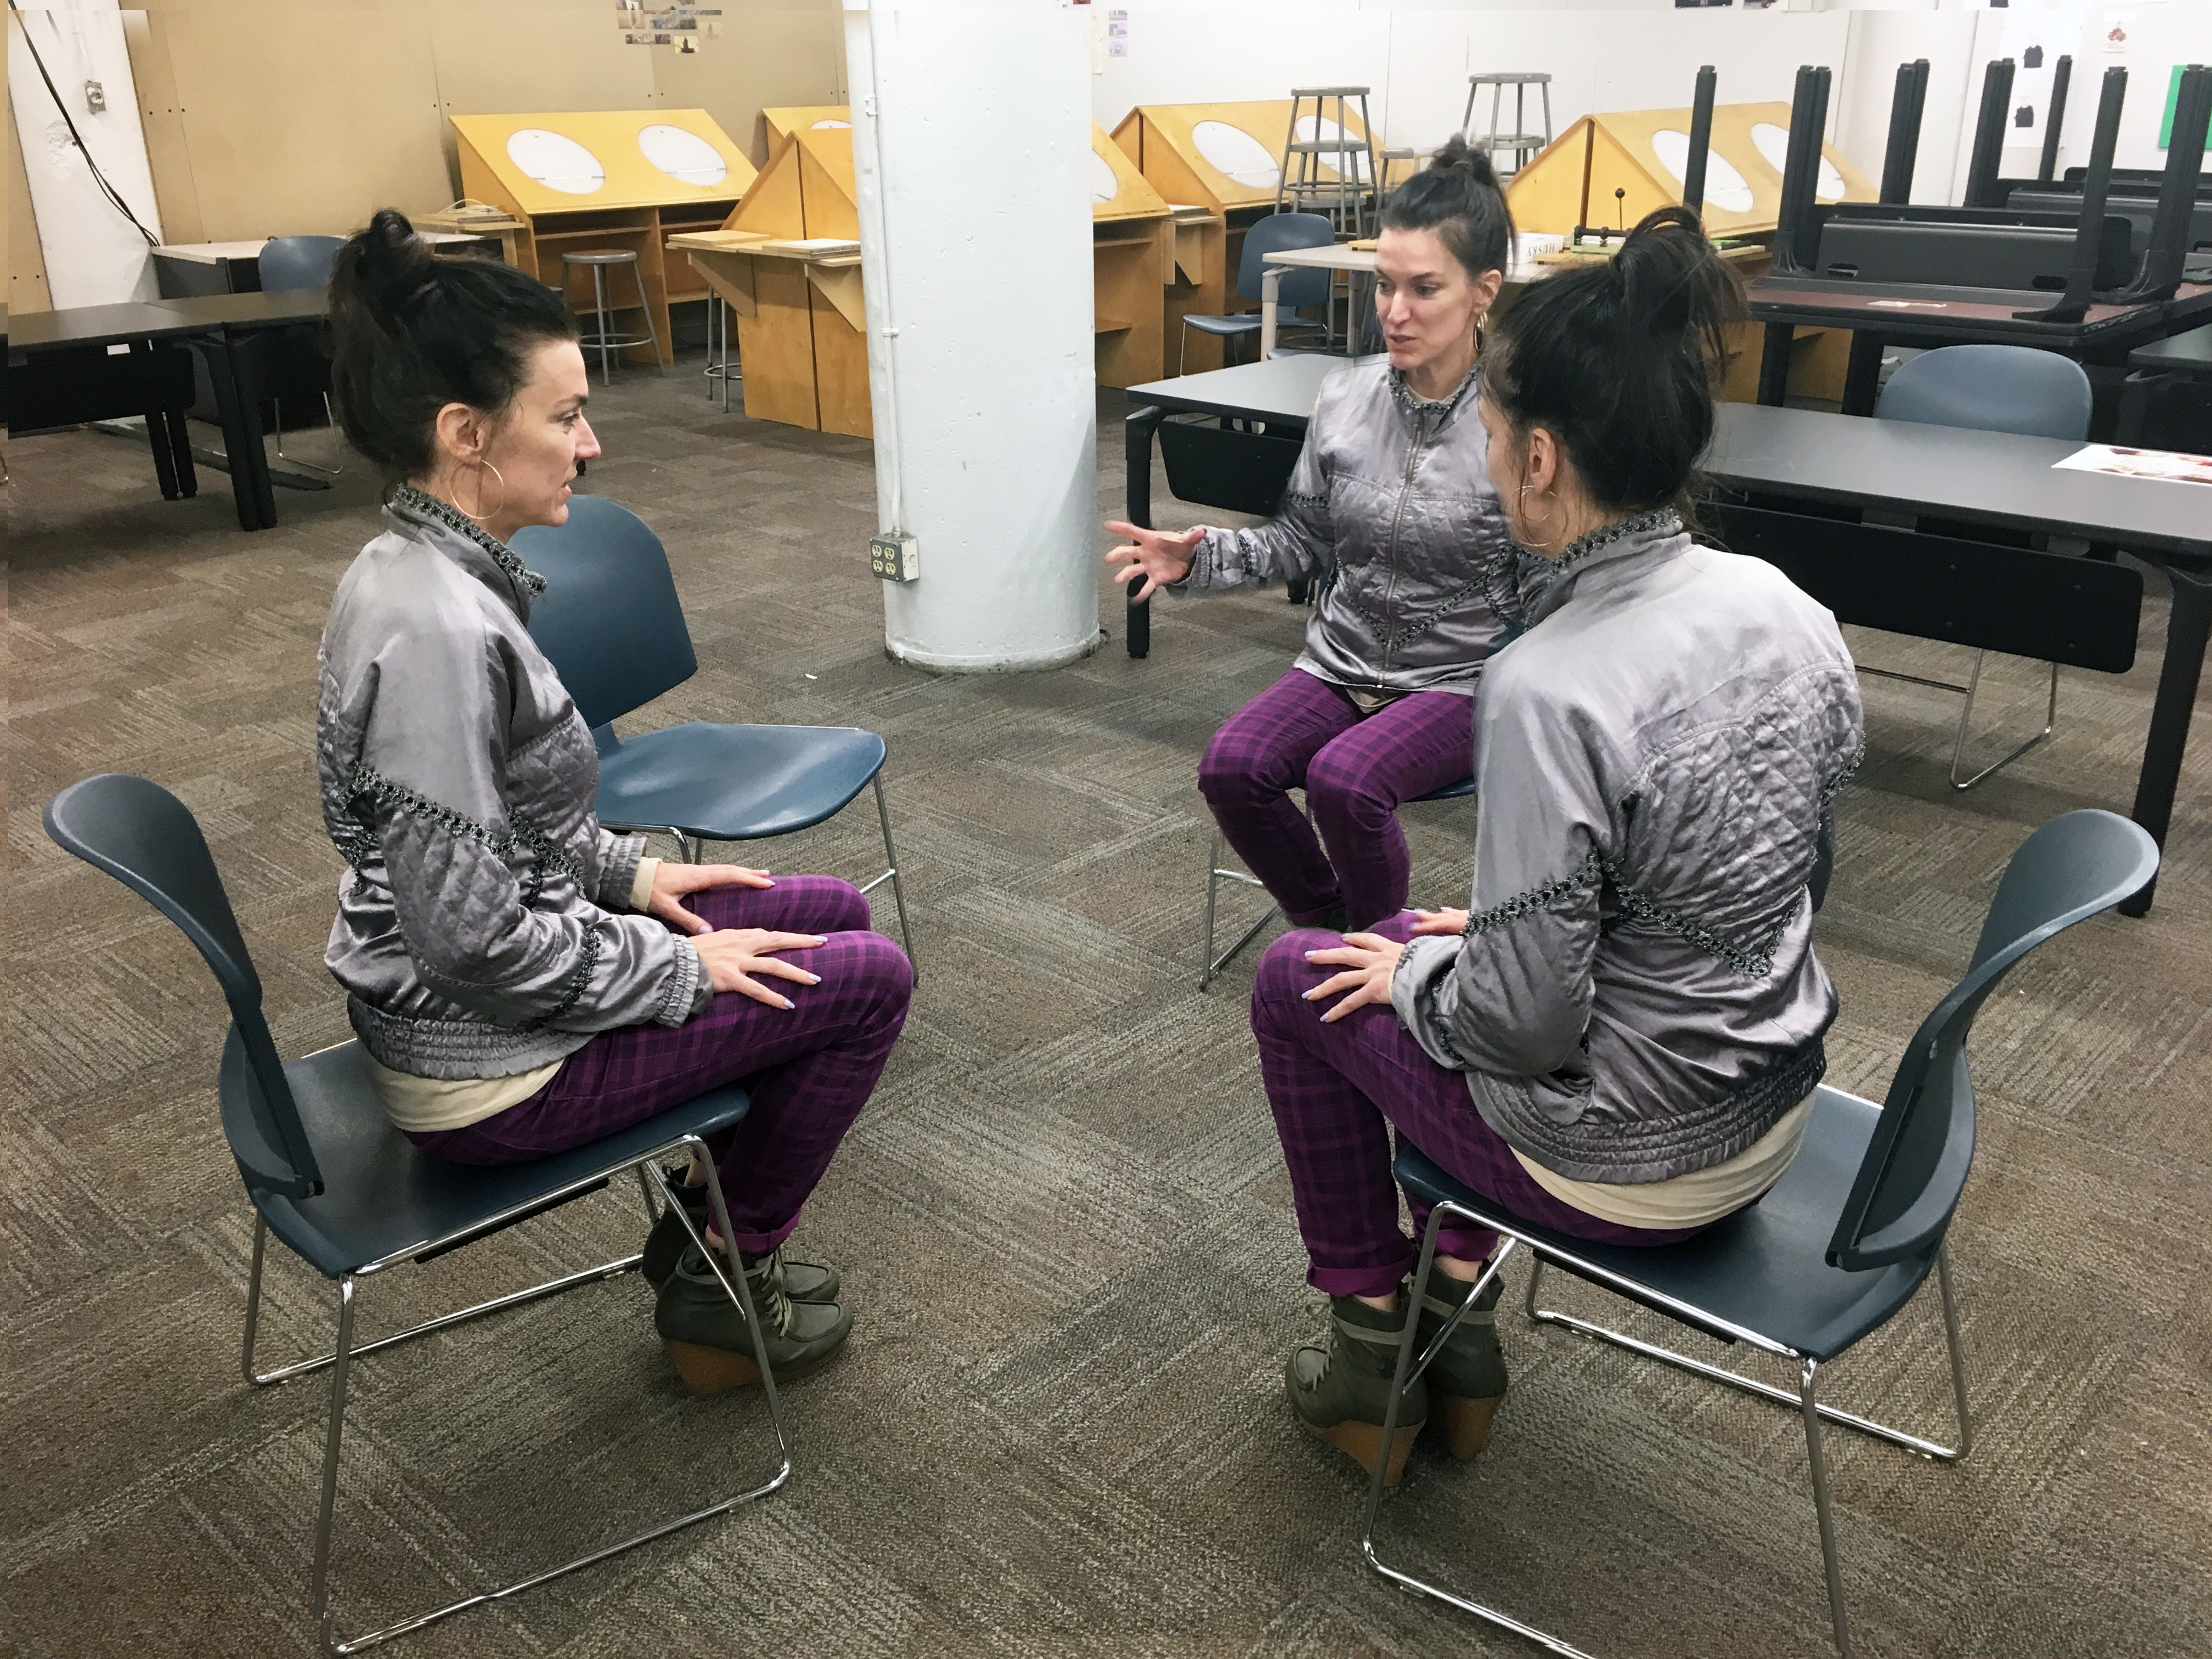 Kim 4 chairs 3 performers